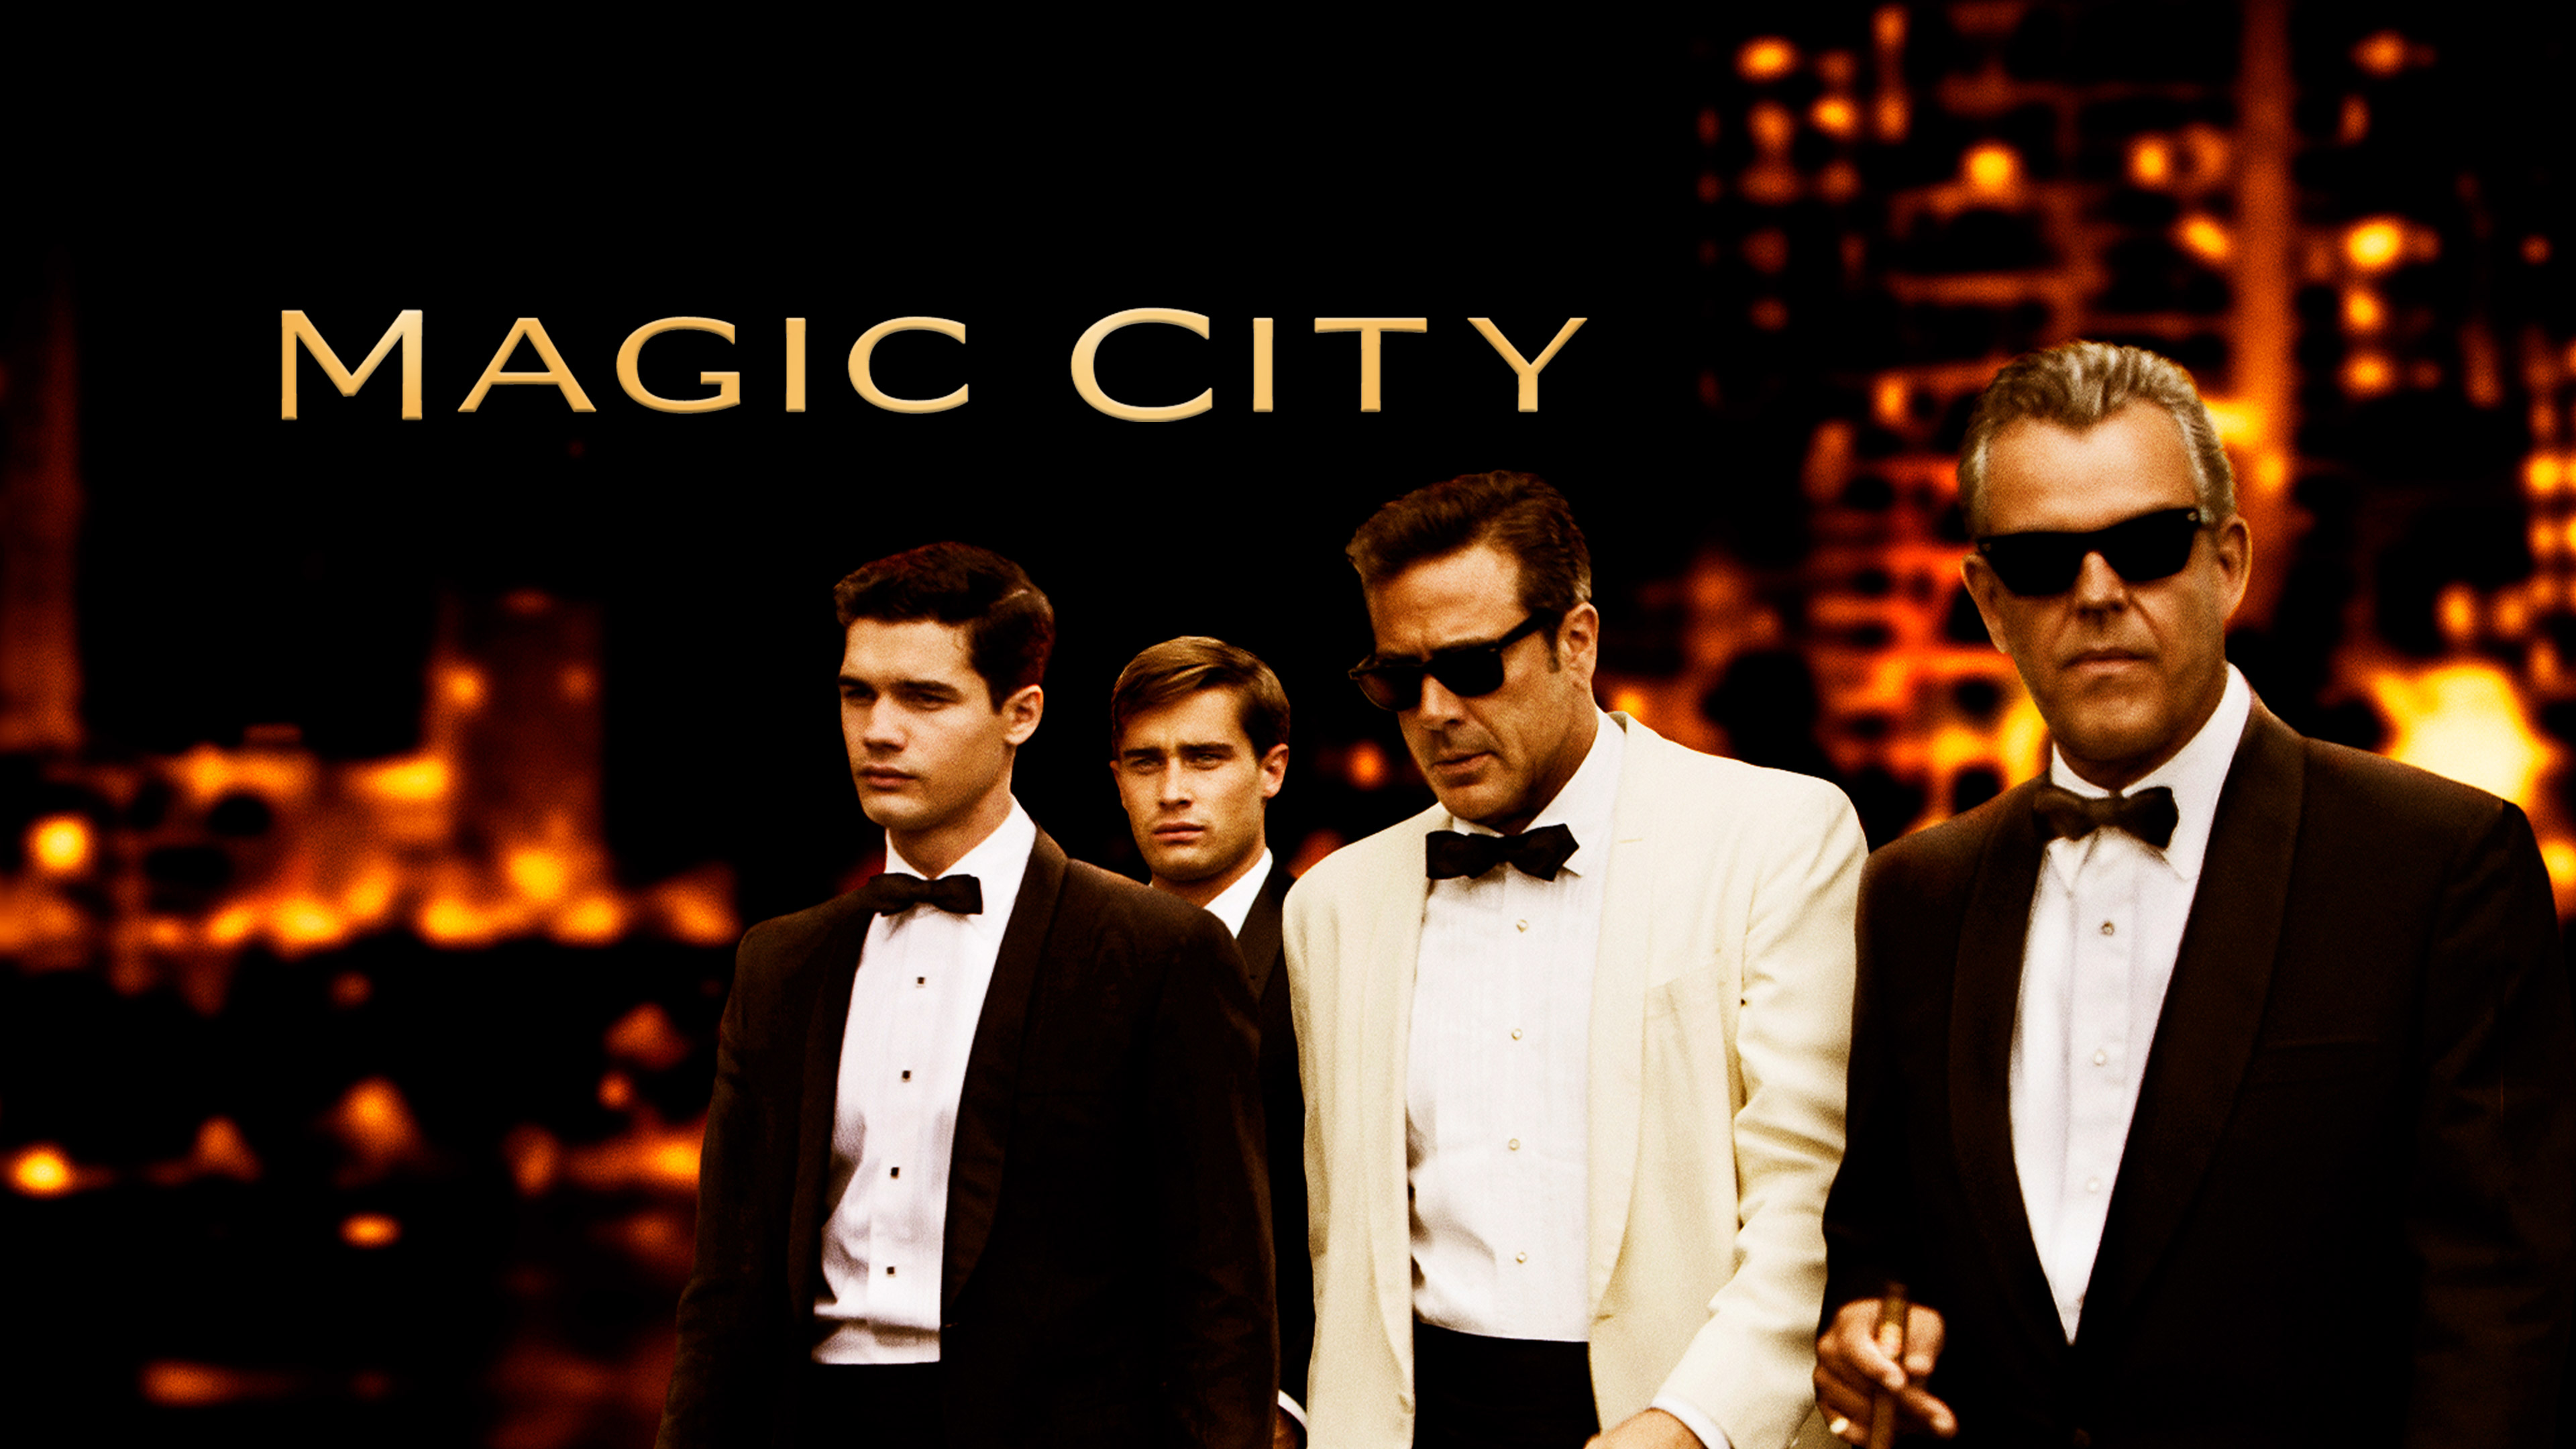 series_tms_SH015083920000_magic-city__img_wide_poster_16x9